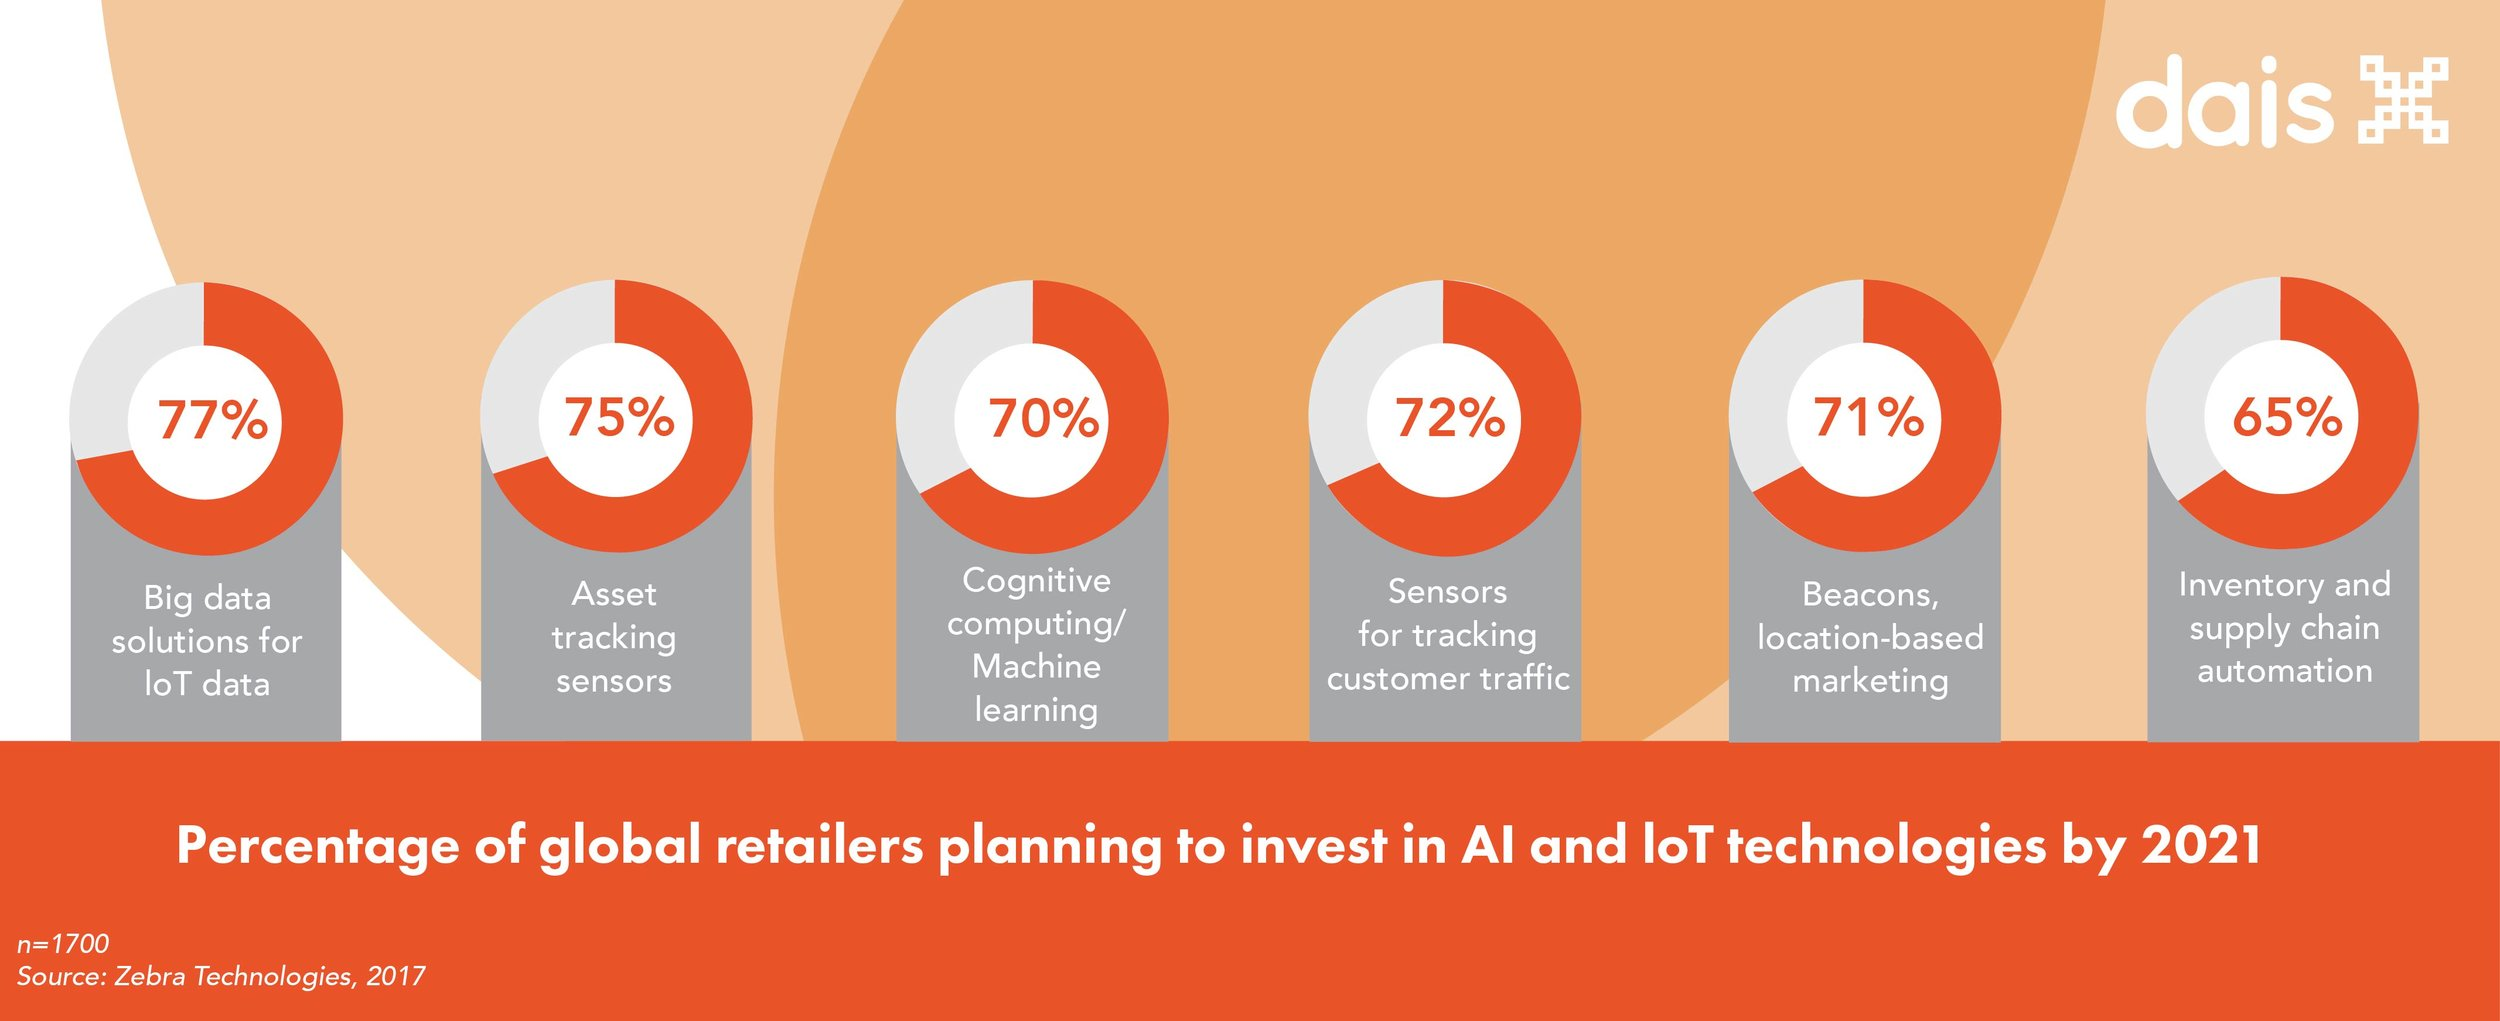 Artificial intelligence can help deliver the highly personalized experiences shoppers desire